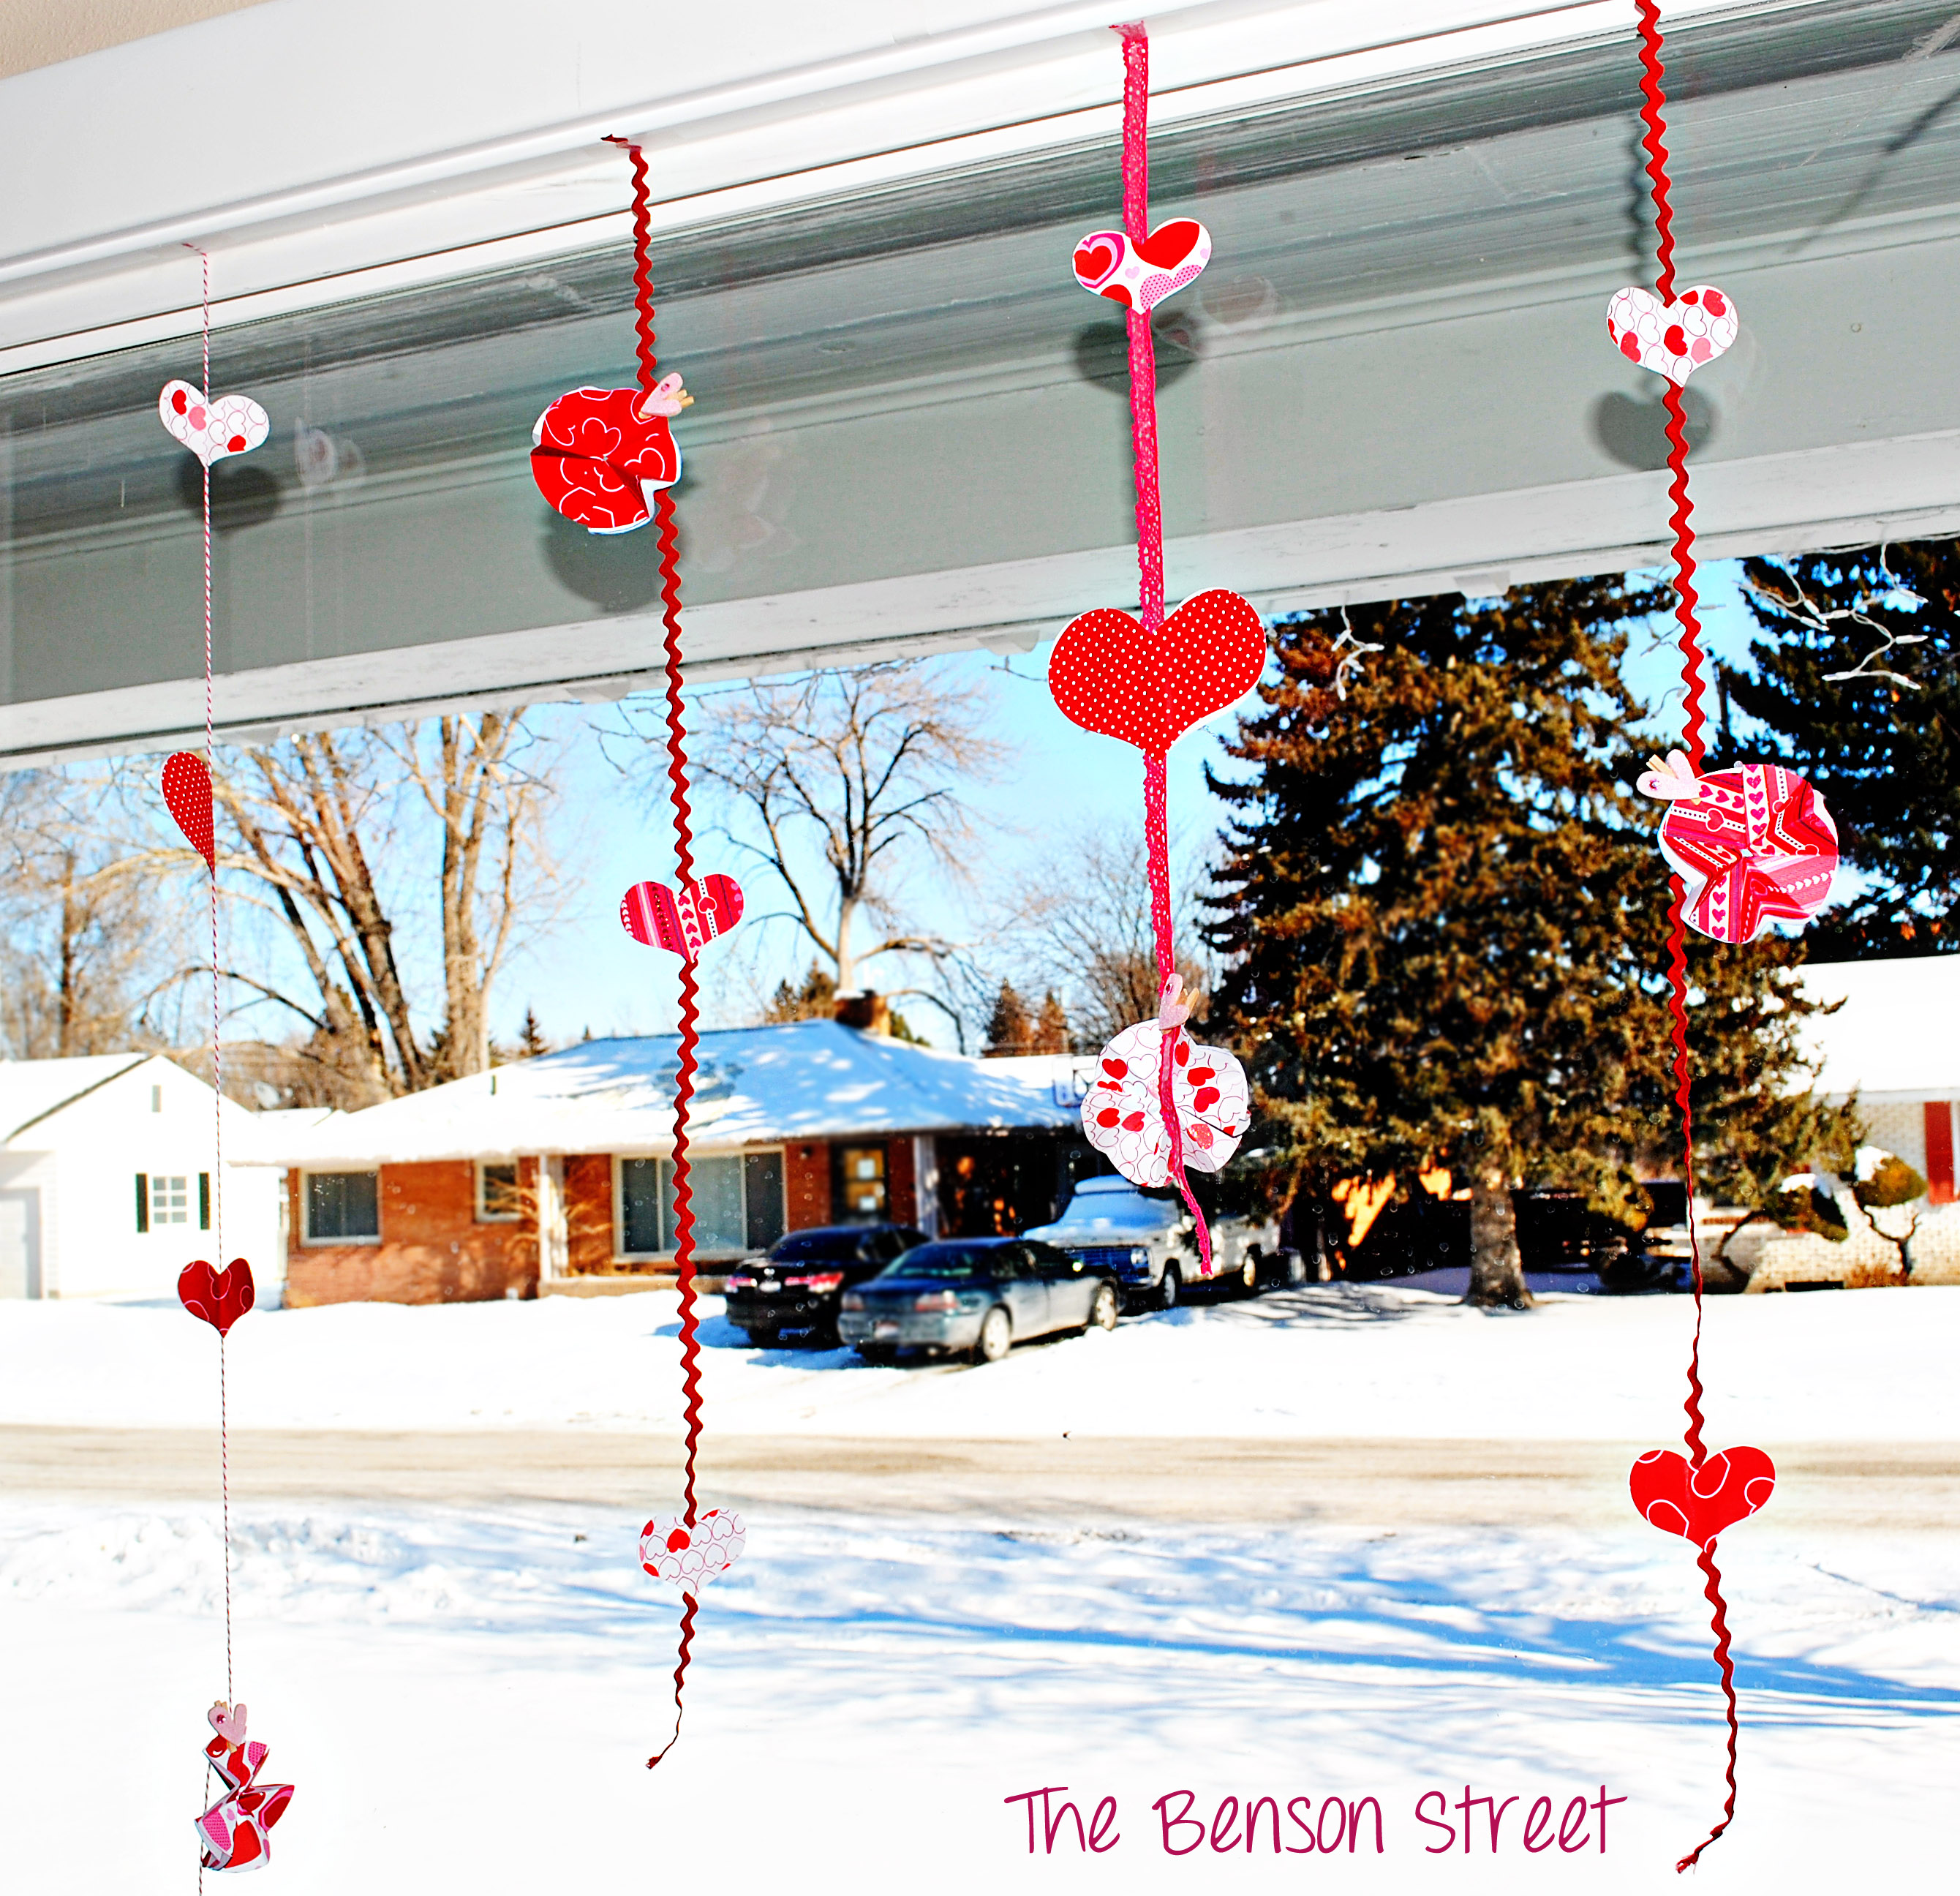 Hanging Valentine Garlands at The Benson Street